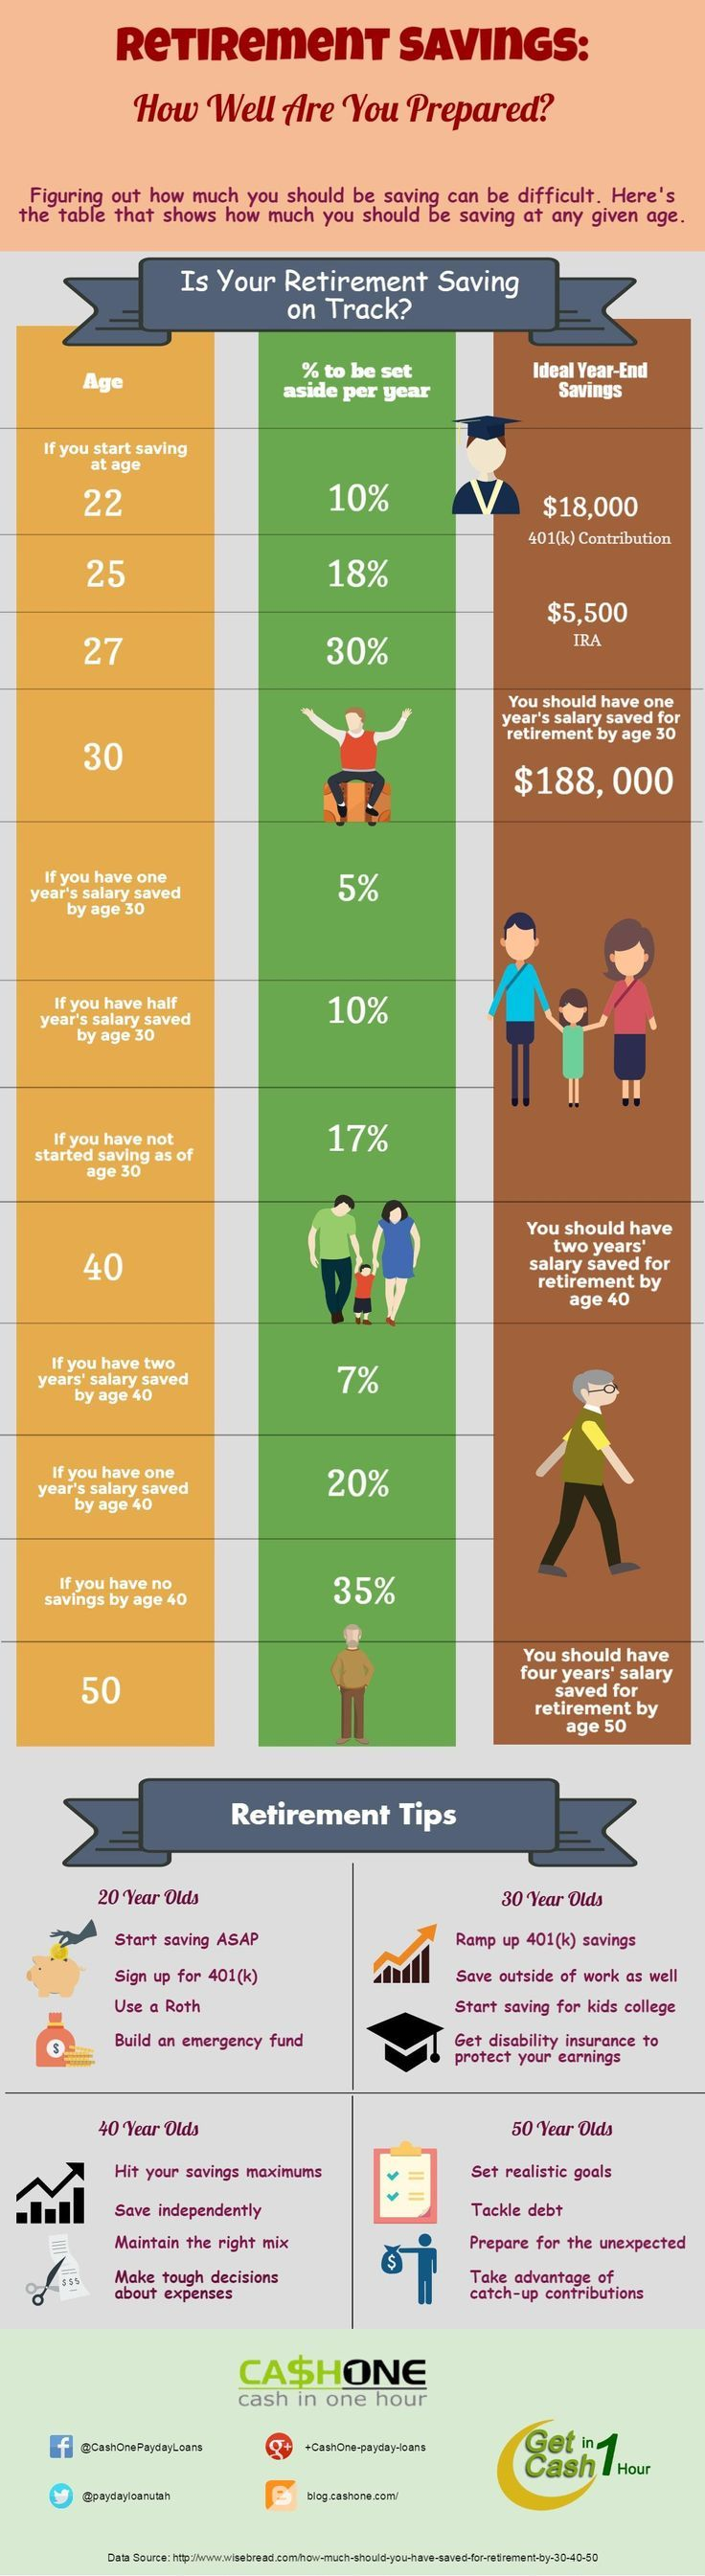 #Retirement savings chart. #Infographic #SavingsForRetirement #CashOne